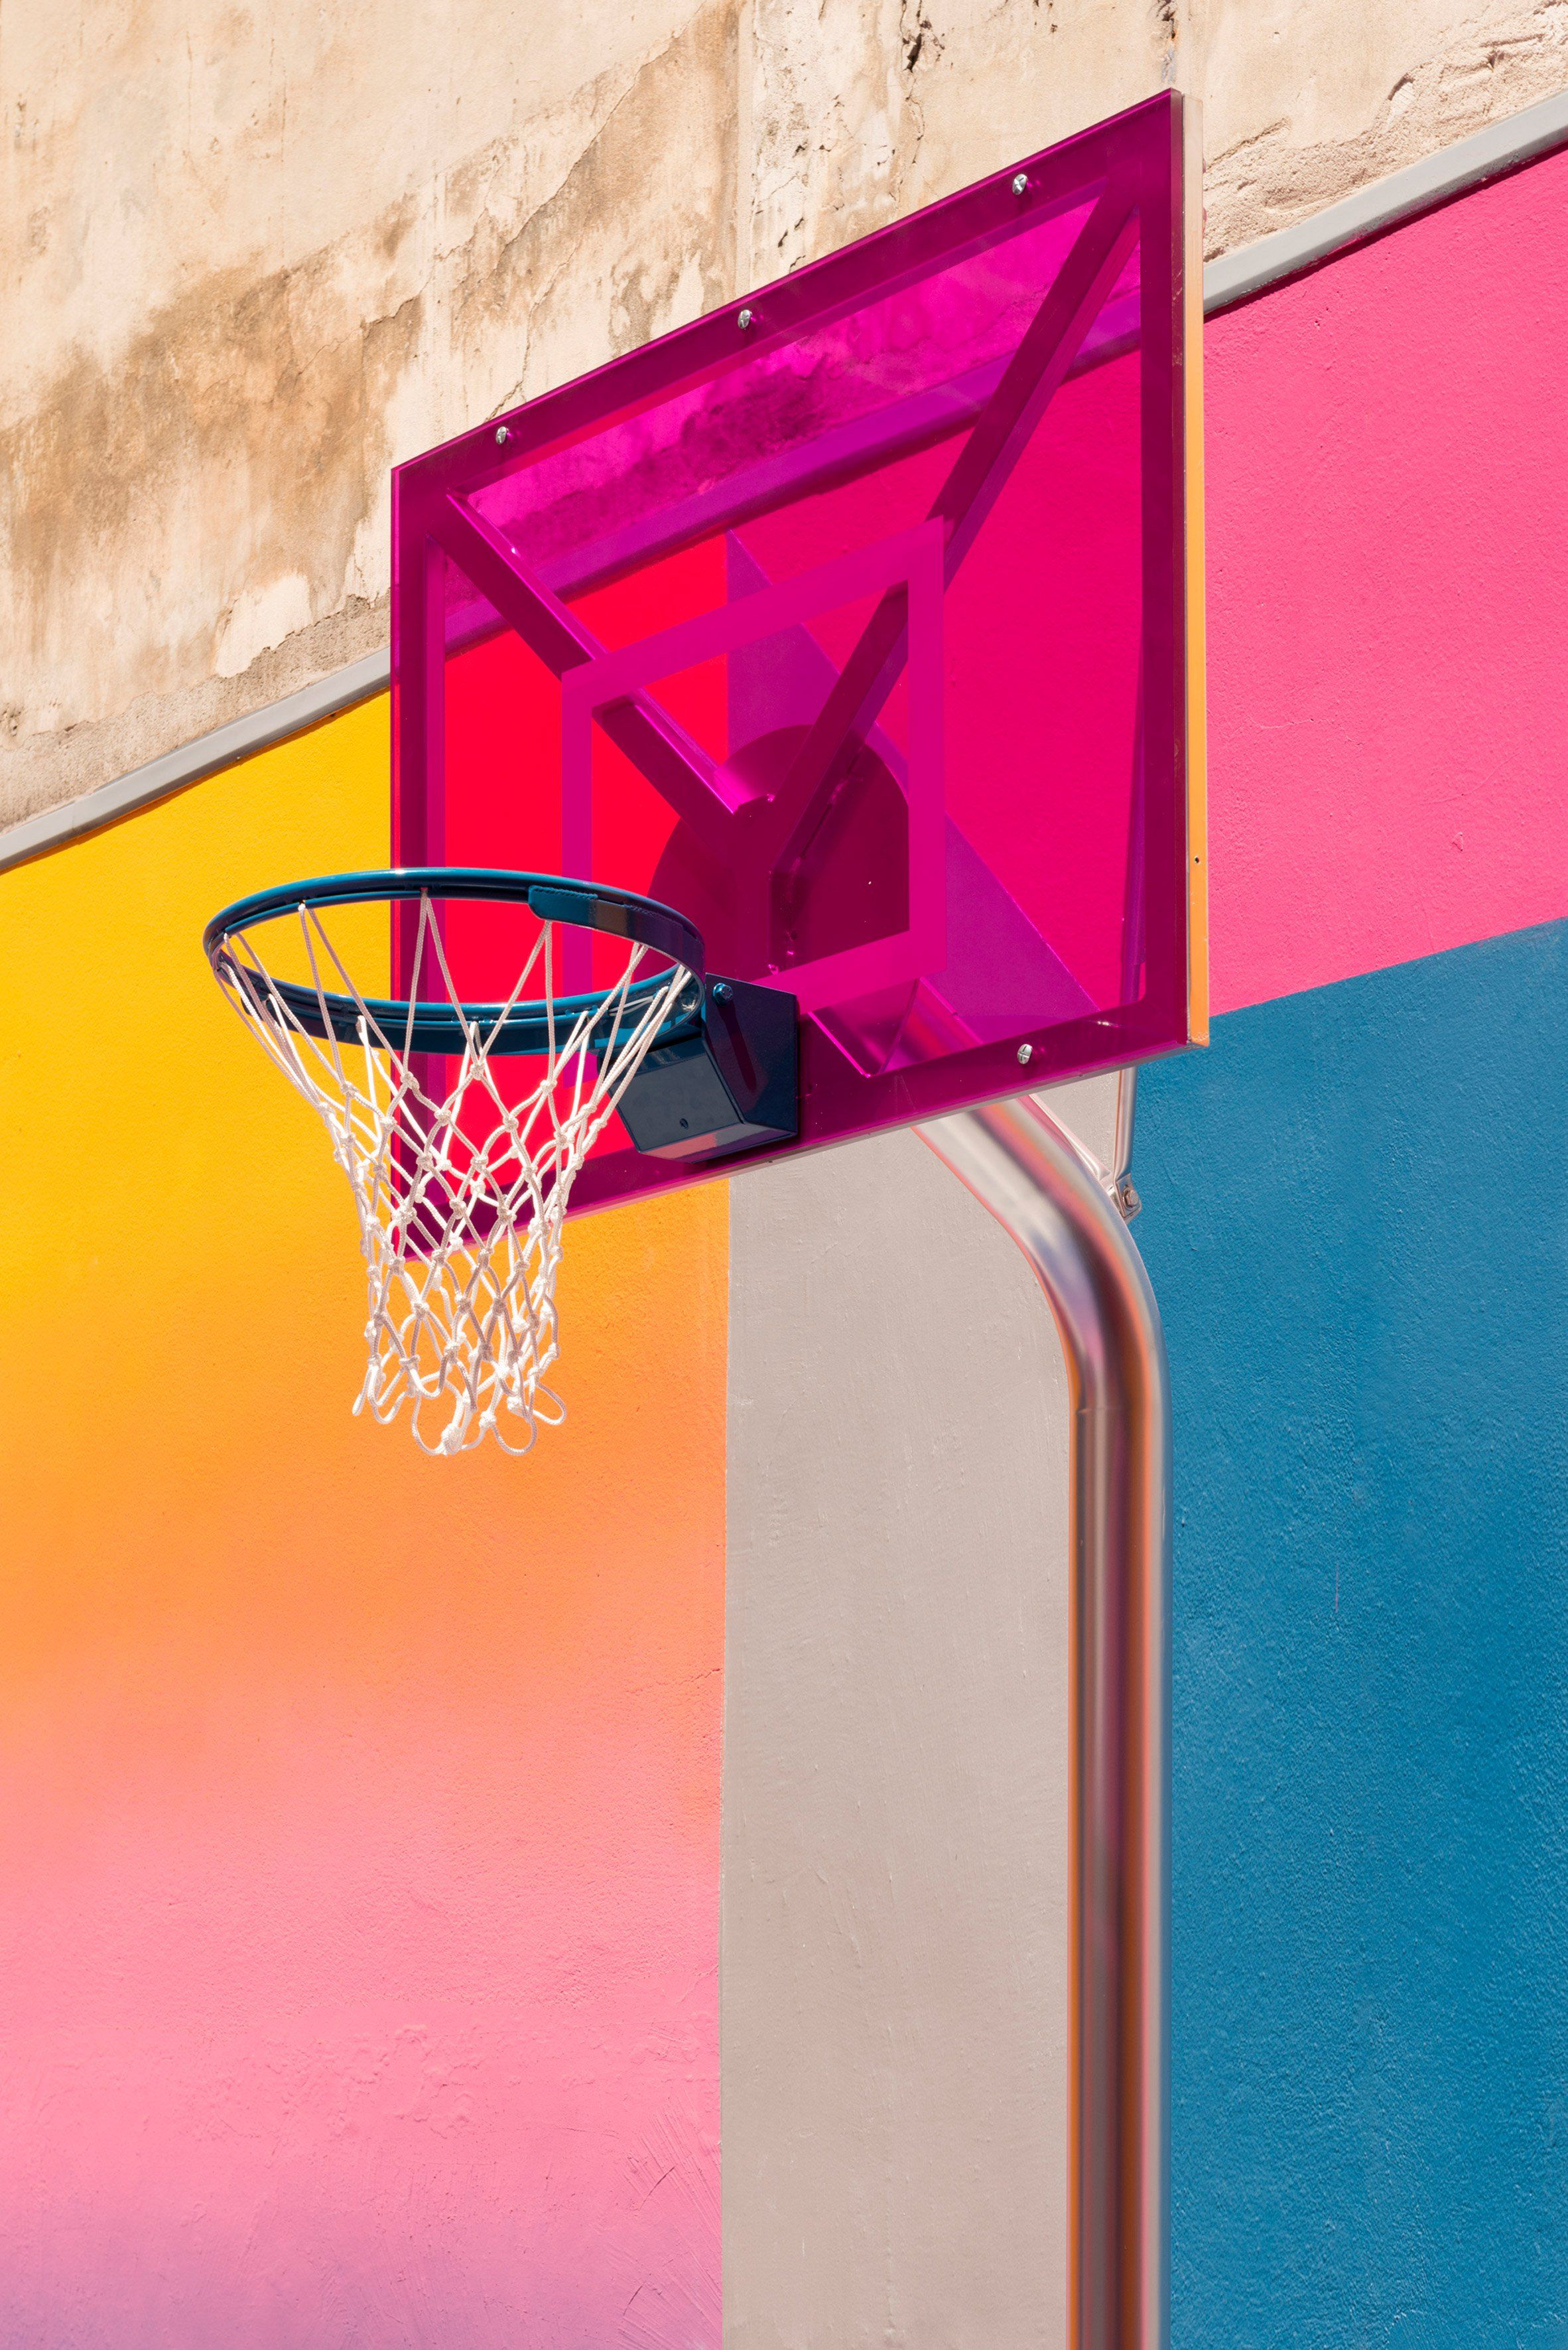 3bb55d73ab5d ill-studio and pigalle have returned to a basketball court they previously  overhauled with bold patterns with new colours and gradients.